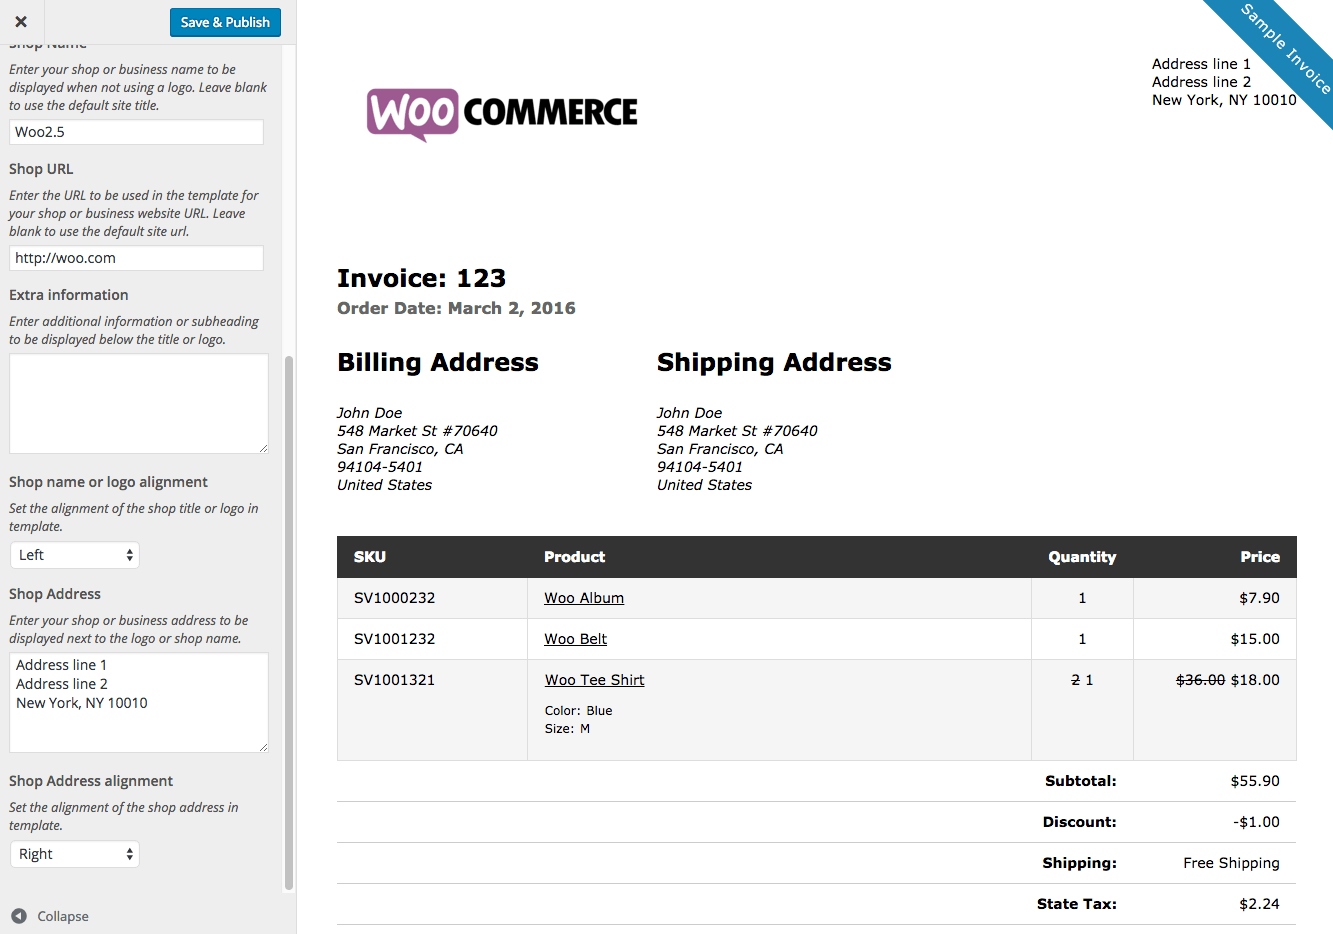 Weirdmailus  Unique Woocommerce Print Invoices Amp Packing Lists  Woocommerce Docs With Exquisite Woocommerce Print Invoices  Packing Lists Customizer With Comely Invoice Sales Also How To Keep Track Of Invoices In Addition Canada Customs Invoice Fillable And Find Out Invoice Price Of Car As Well As Invoice For Business Additionally Maintenance Invoice From Docswoocommercecom With Weirdmailus  Exquisite Woocommerce Print Invoices Amp Packing Lists  Woocommerce Docs With Comely Woocommerce Print Invoices  Packing Lists Customizer And Unique Invoice Sales Also How To Keep Track Of Invoices In Addition Canada Customs Invoice Fillable From Docswoocommercecom